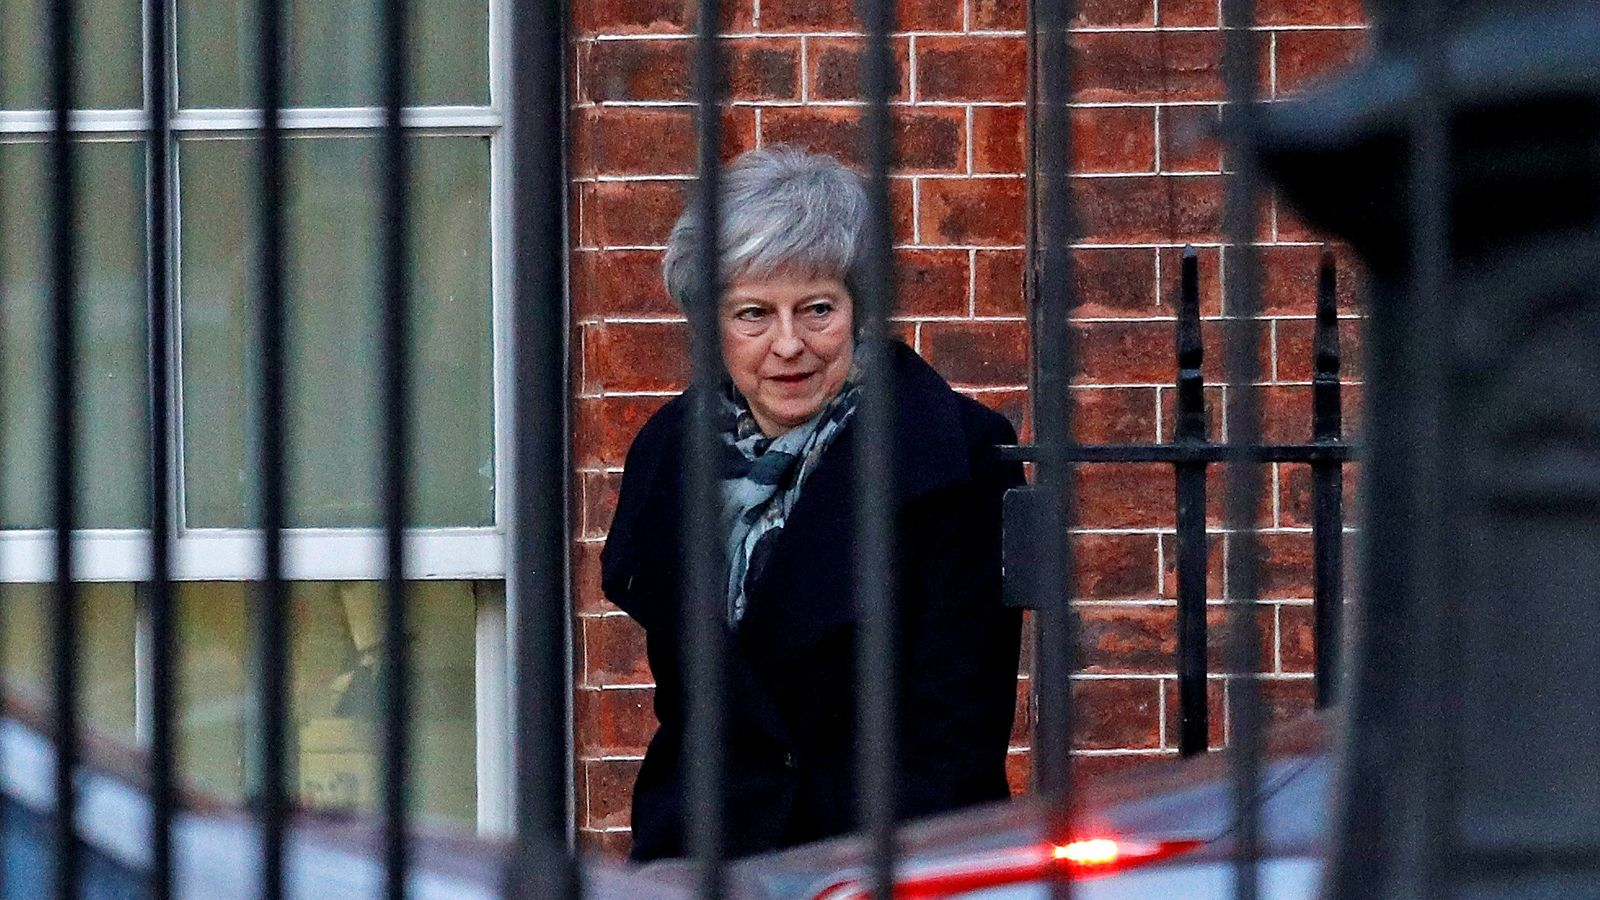 Brexit battle: Theresa May to reject growing calls for second EU referendum